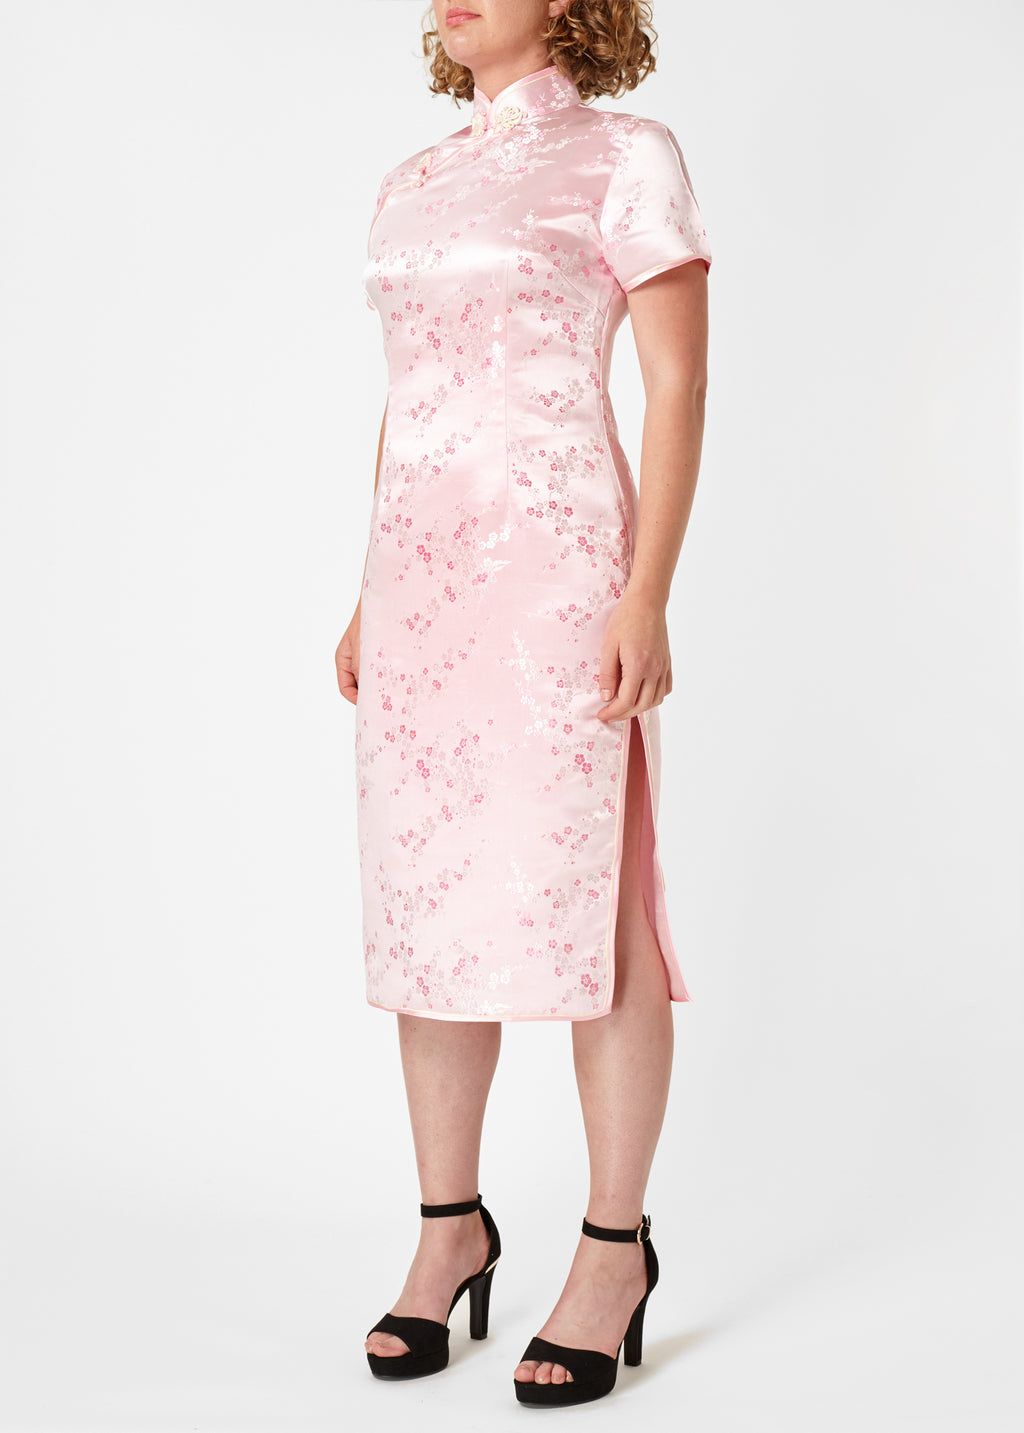 The Cheongsam or Qipao, is a feminine body-hugging dress with distinctive Chinese features of mandarin collar, side splits and hand stitched flower and knot frog fastenings. Manufactured in authentic high quality silk/rayon brocade in a beautiful subtle pink cherry blossom design - a symbol of female beauty and love.